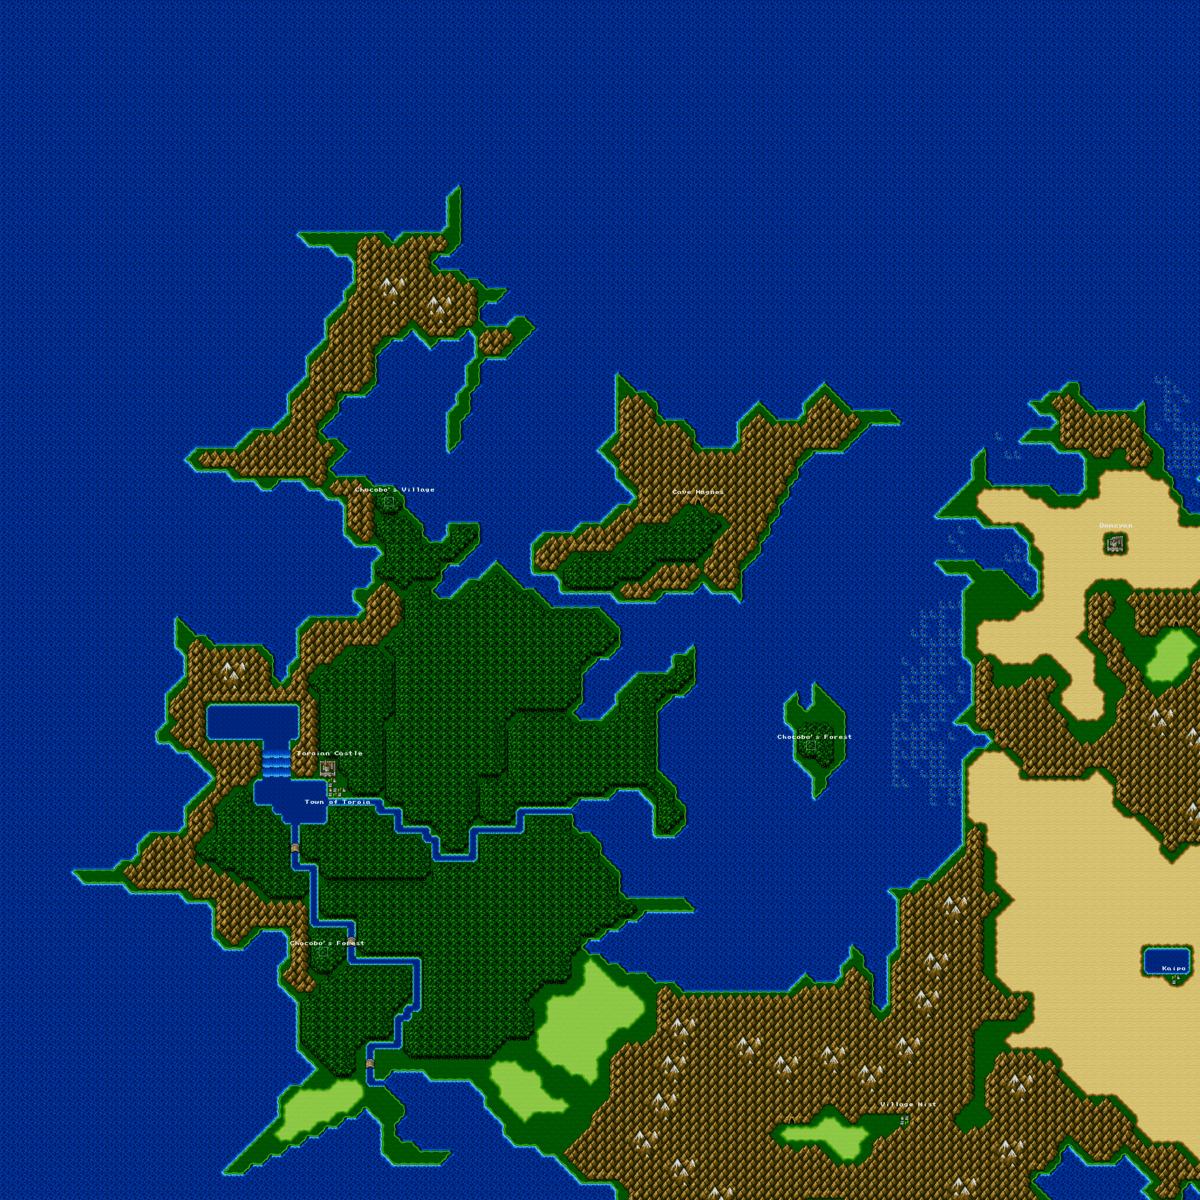 Final Fantasy IVLocations  StrategyWiki the video game